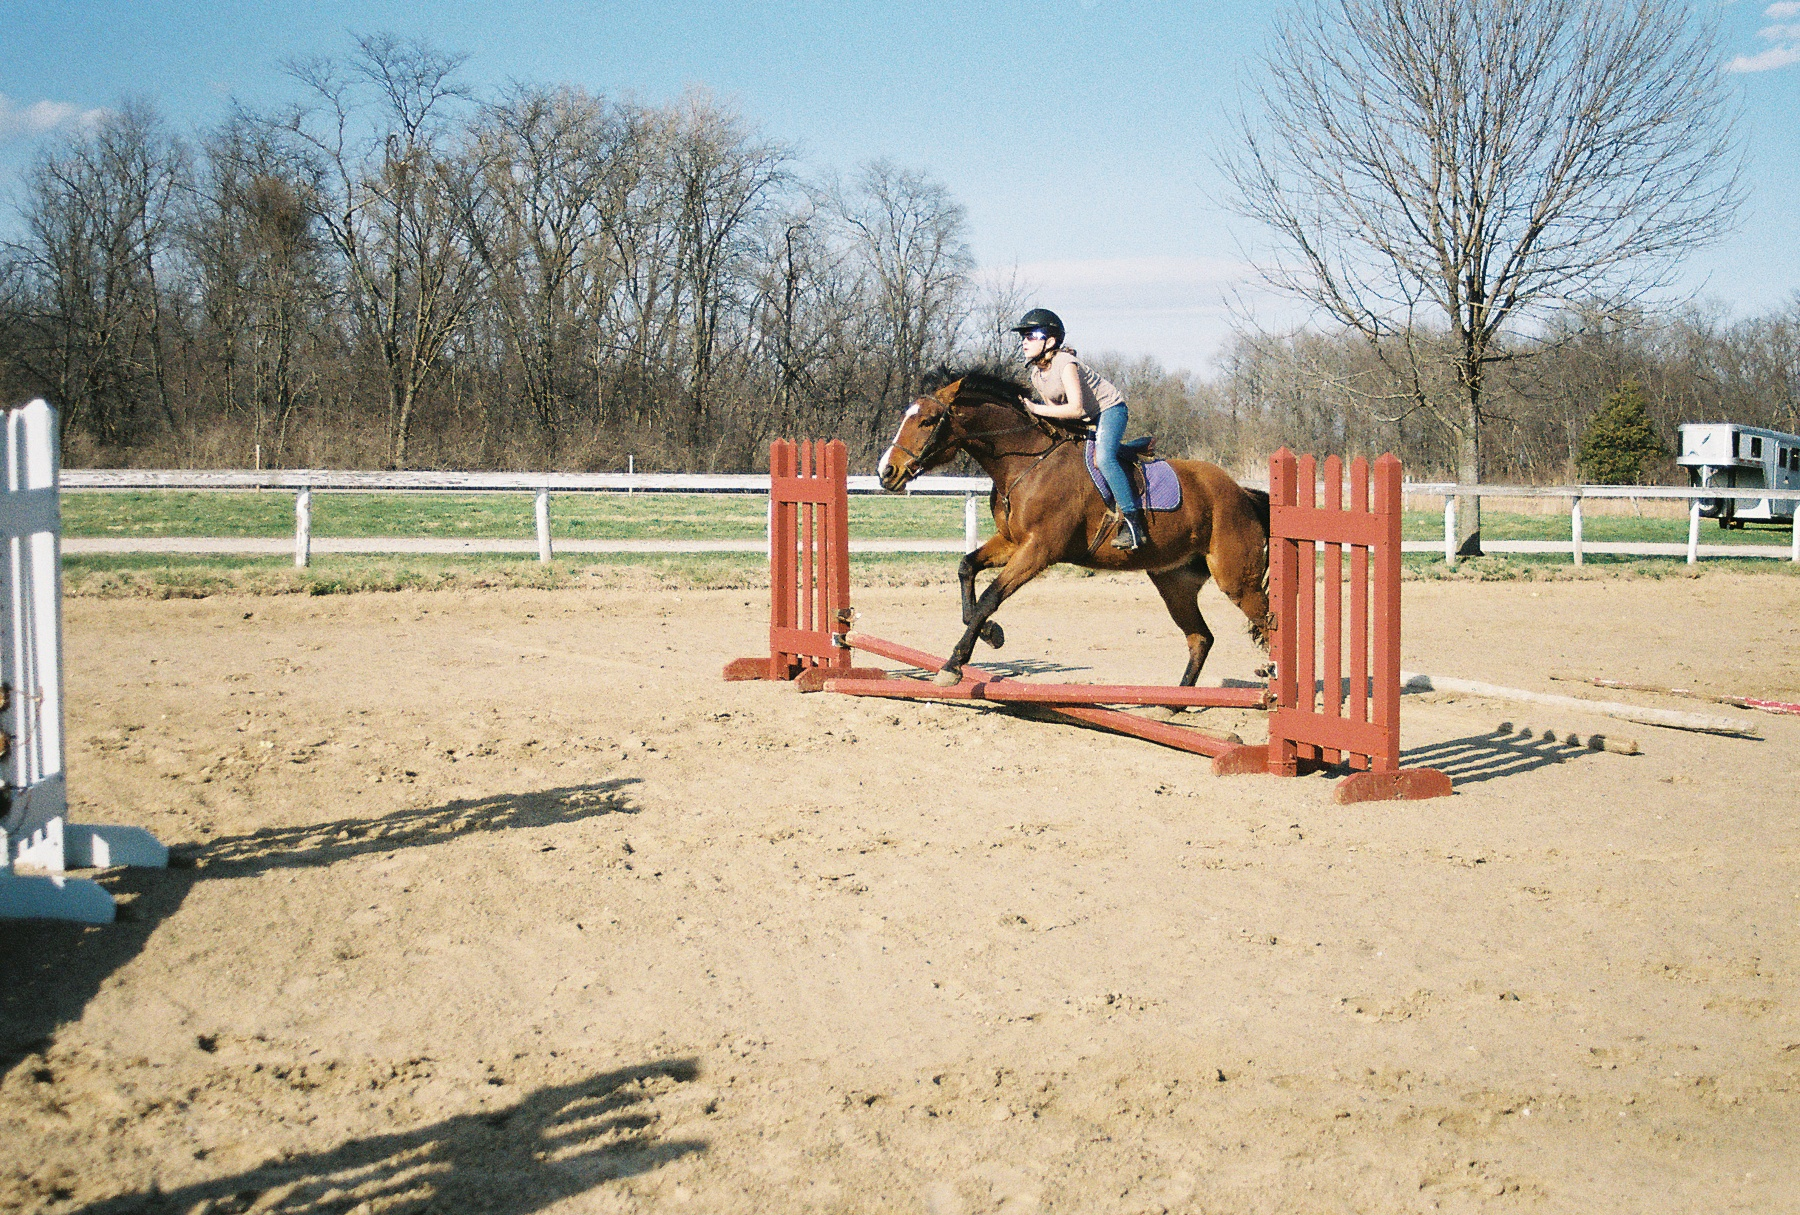 Gretchen Grace riding Ivy, spring 2011